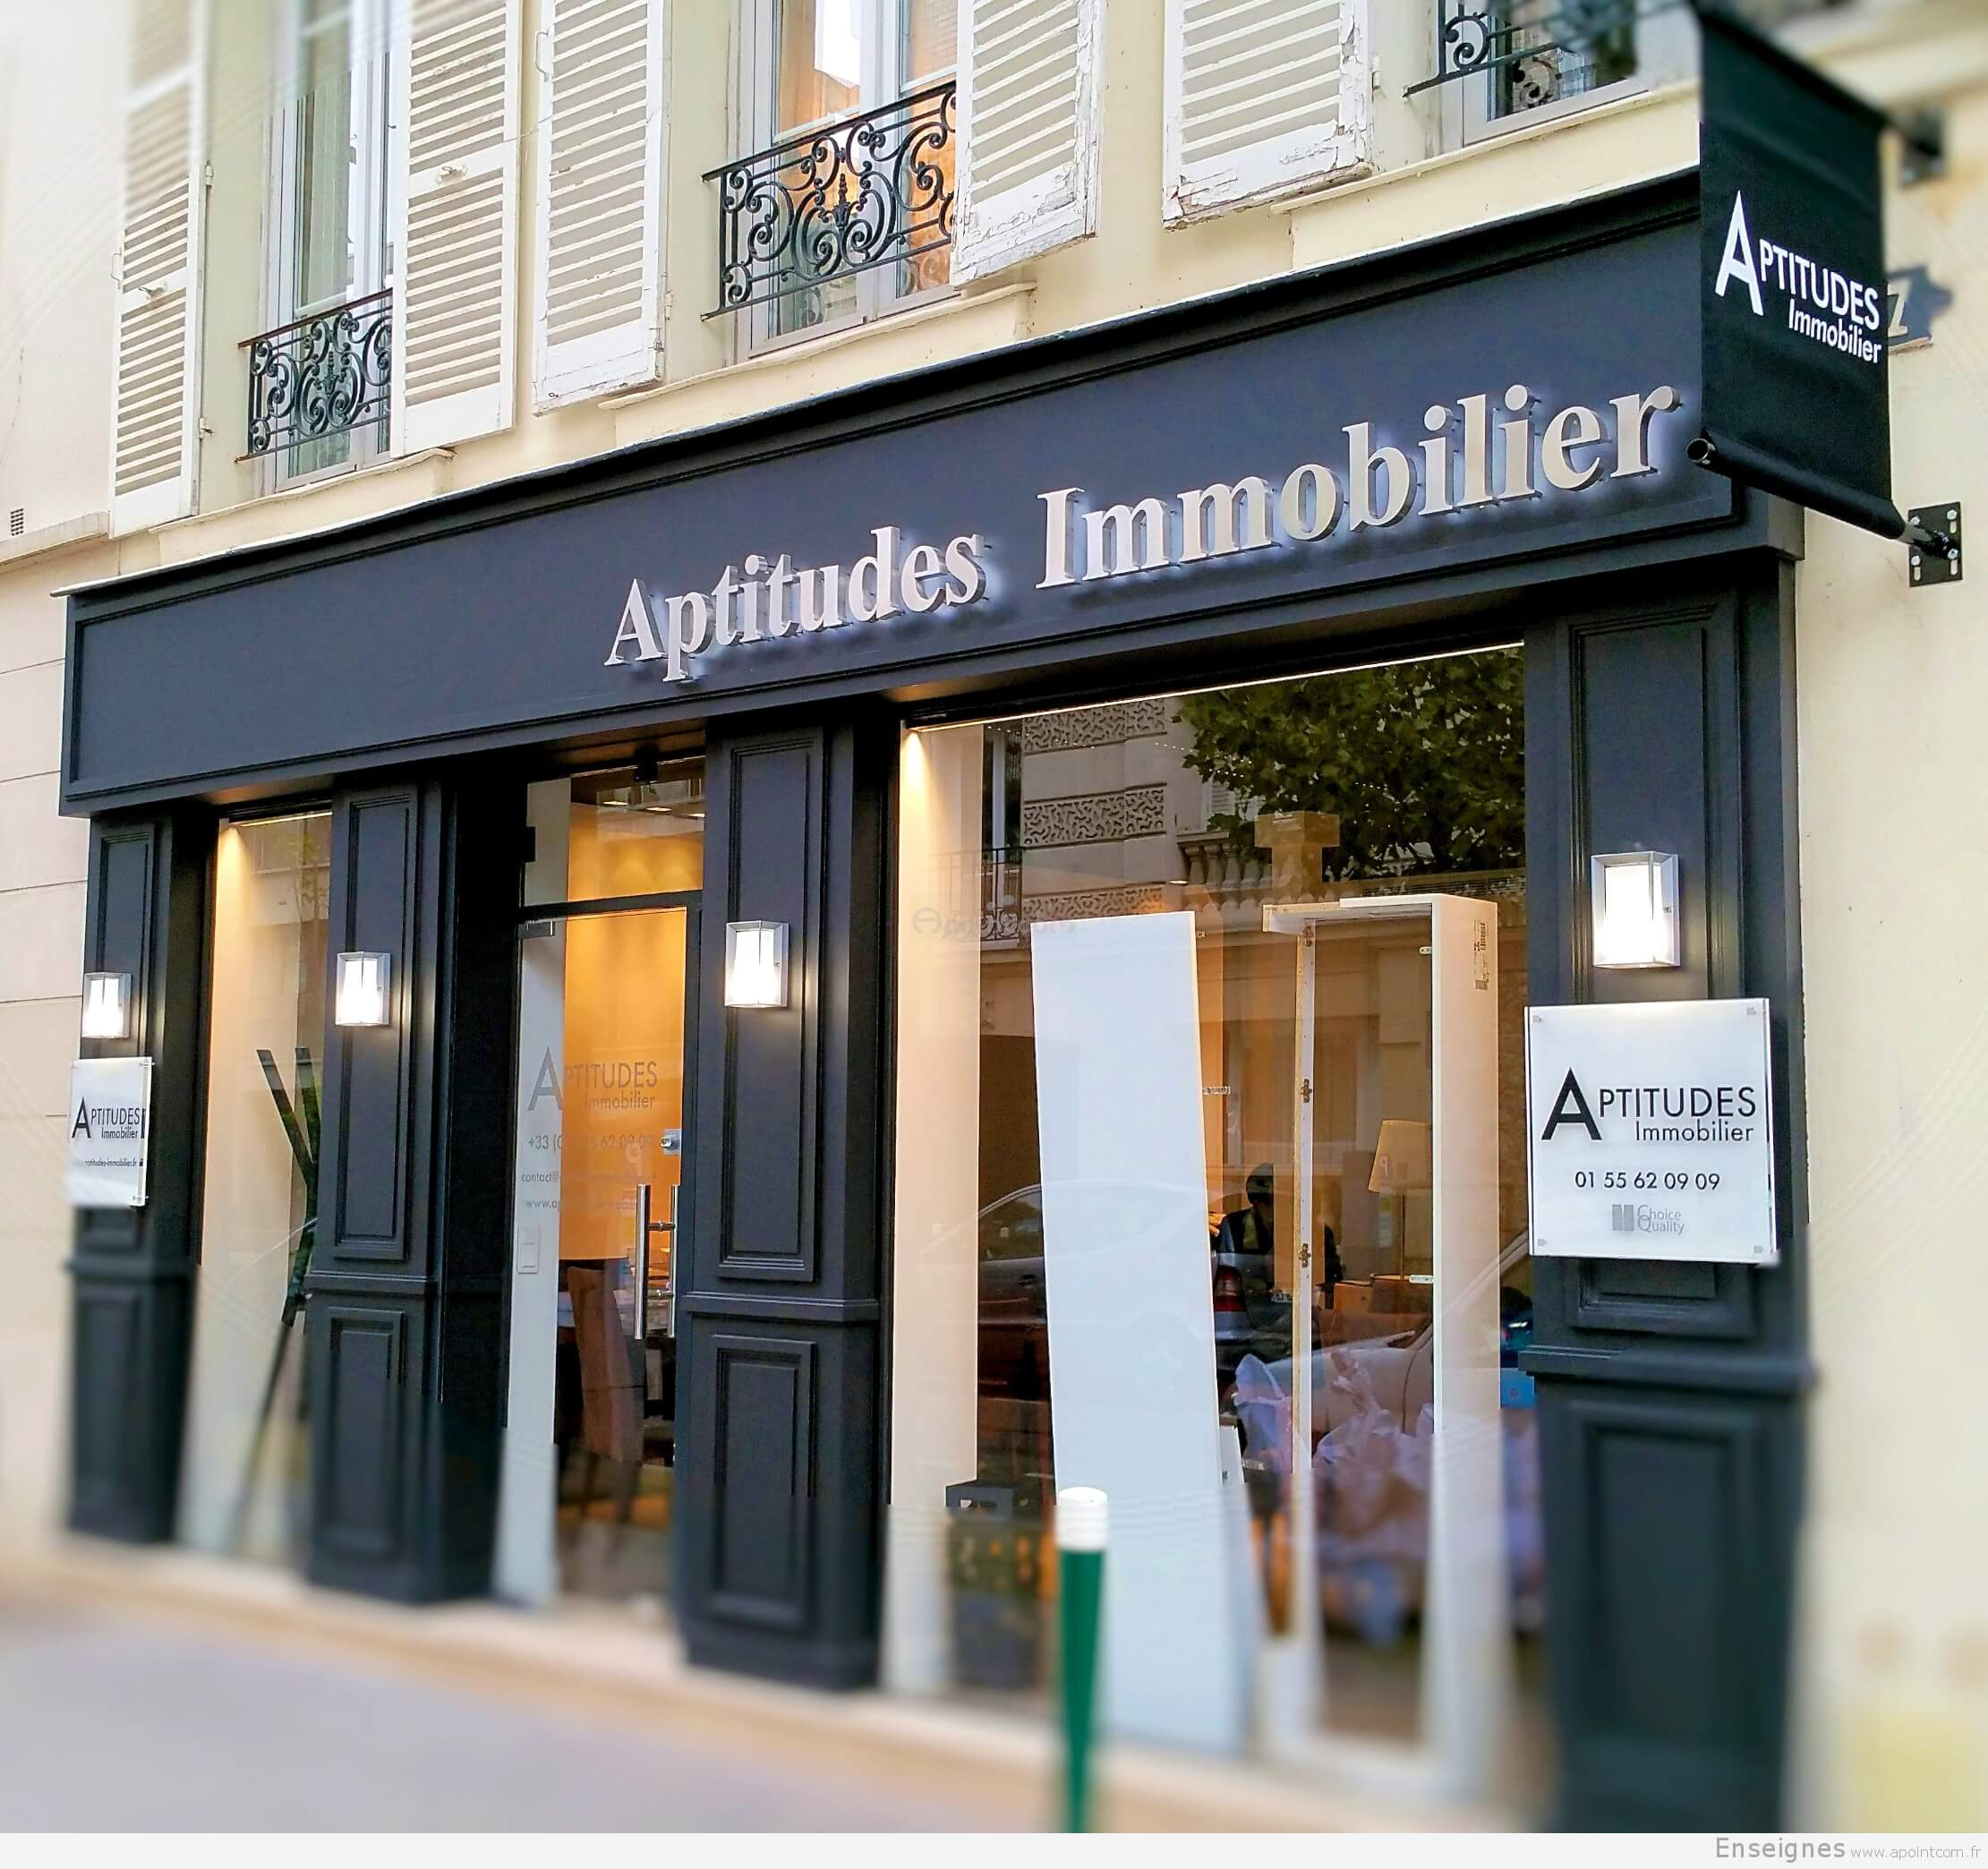 Enseigne lumineuse agence immobili re aptitudes neuilly 92 for Agence immobiliere specialisee terrasse paris